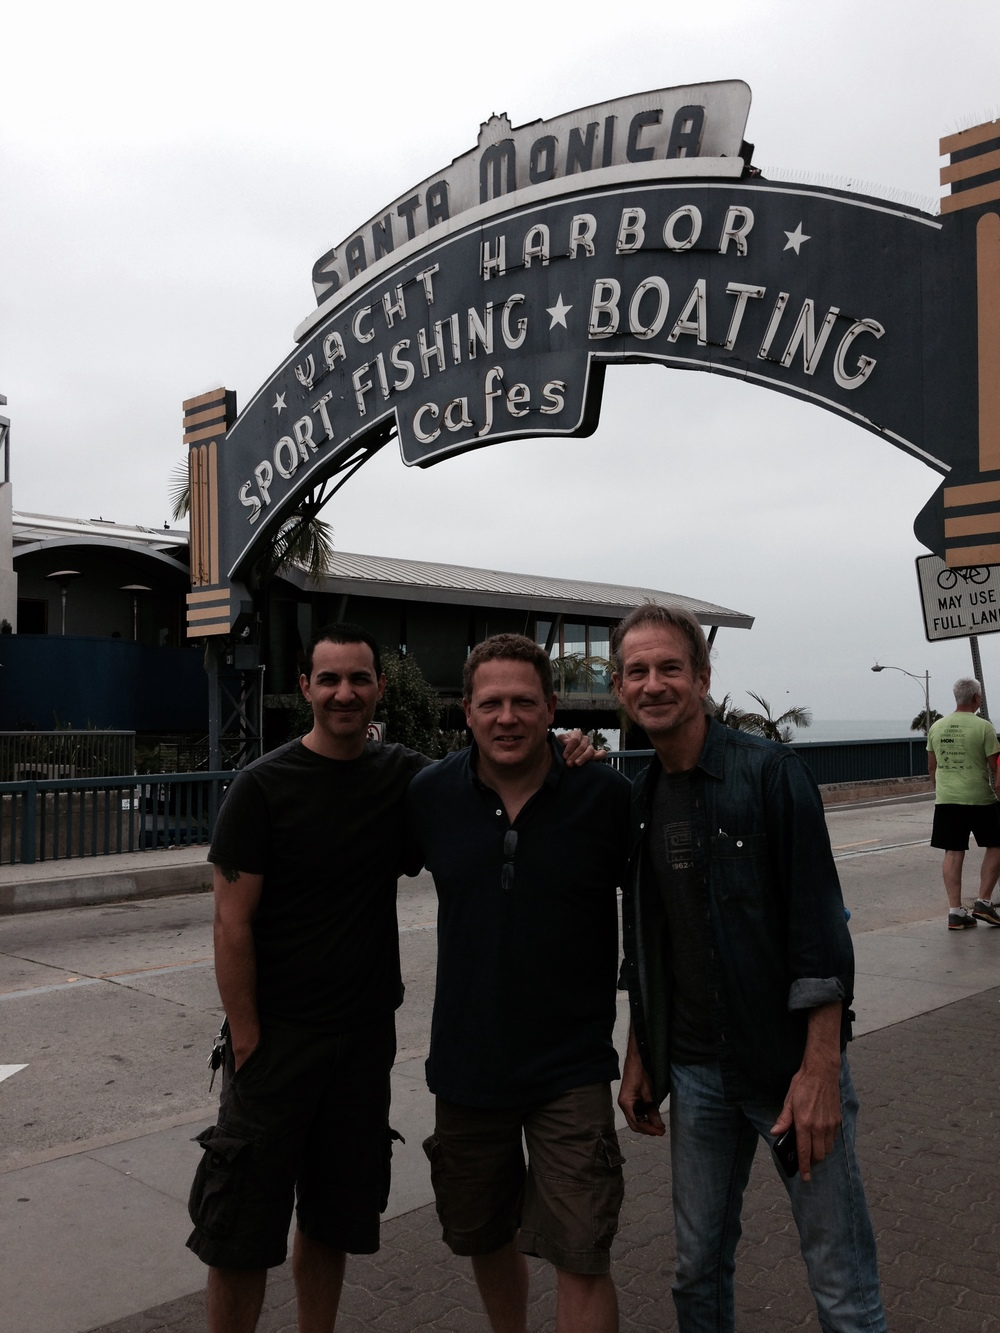 With Graham Maby and Tony Perruso at the Santa Monica Pier Los Angeles, California 2014